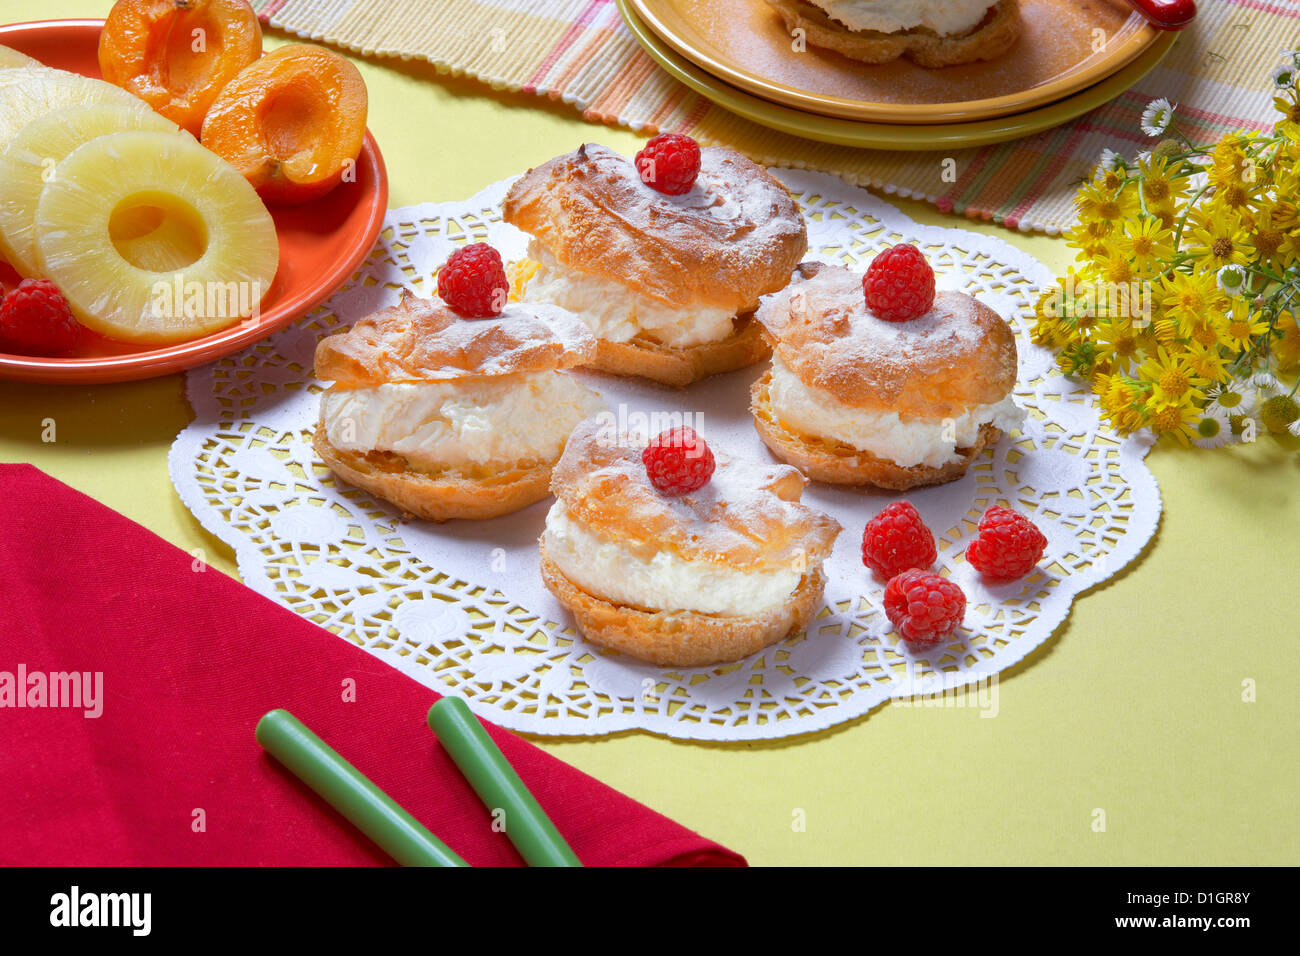 Cookies with cream and raspberries - Stock Image